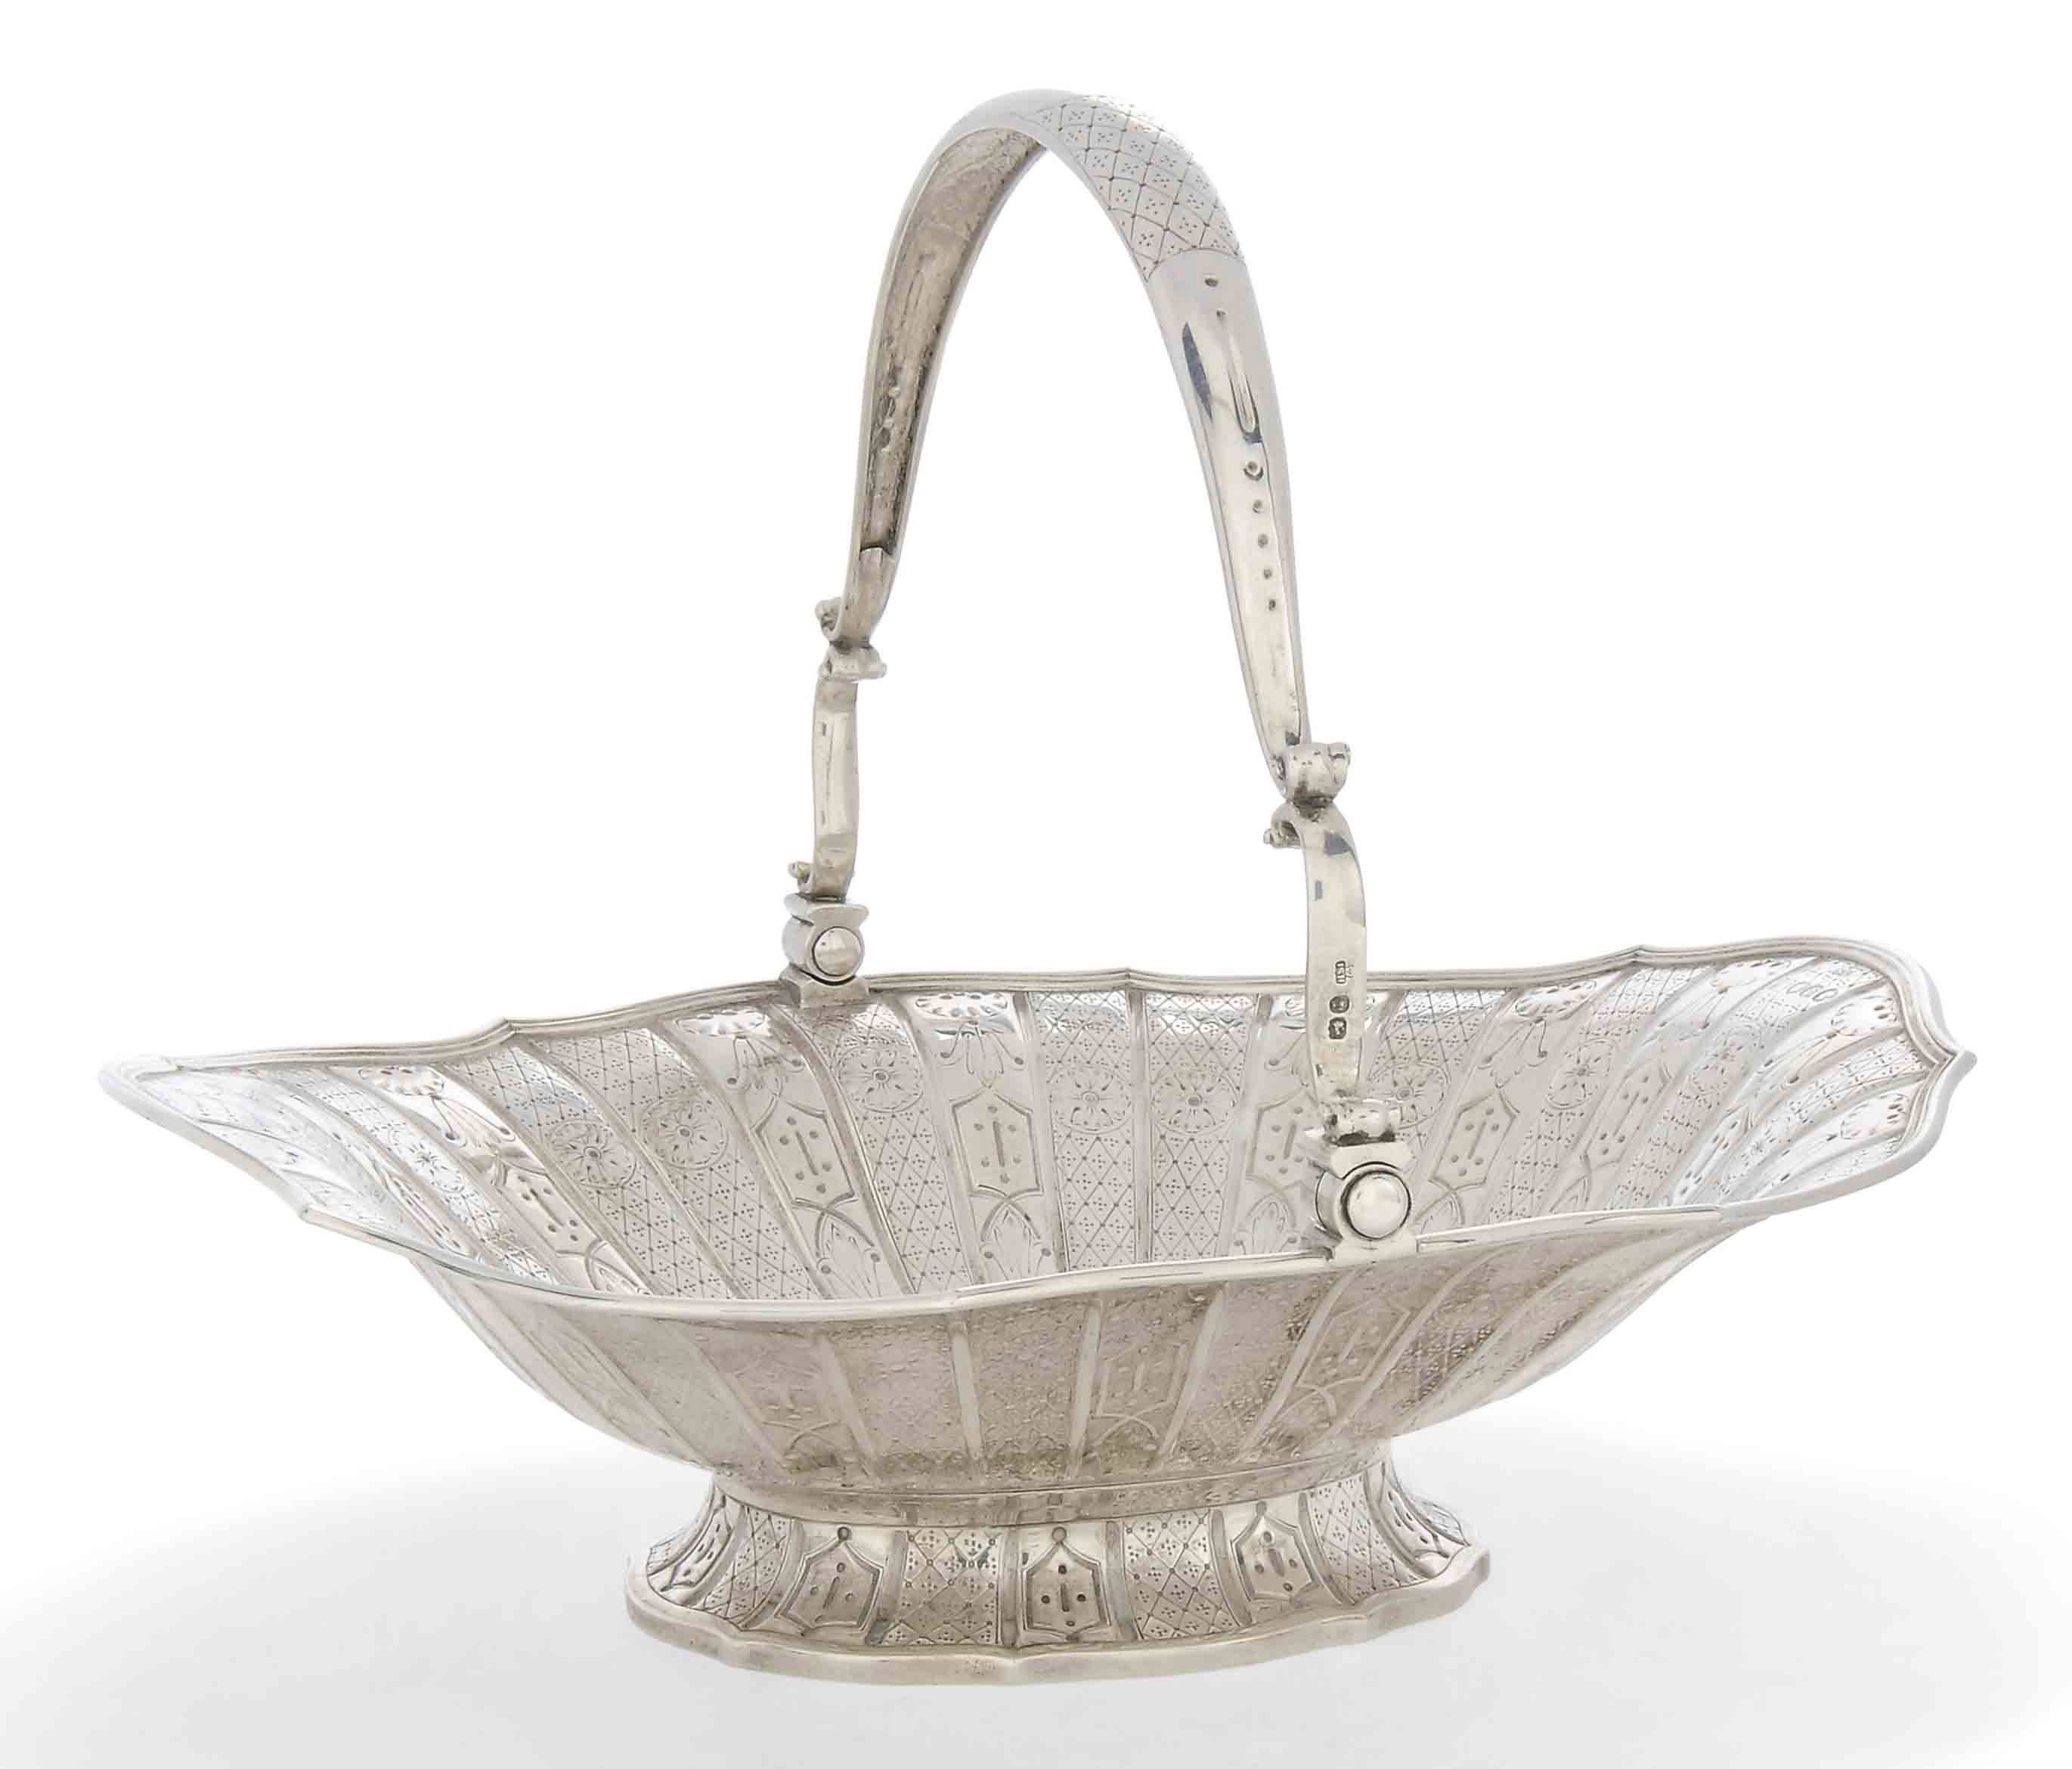 A VICTORIAN SILVER SWING-HANDL